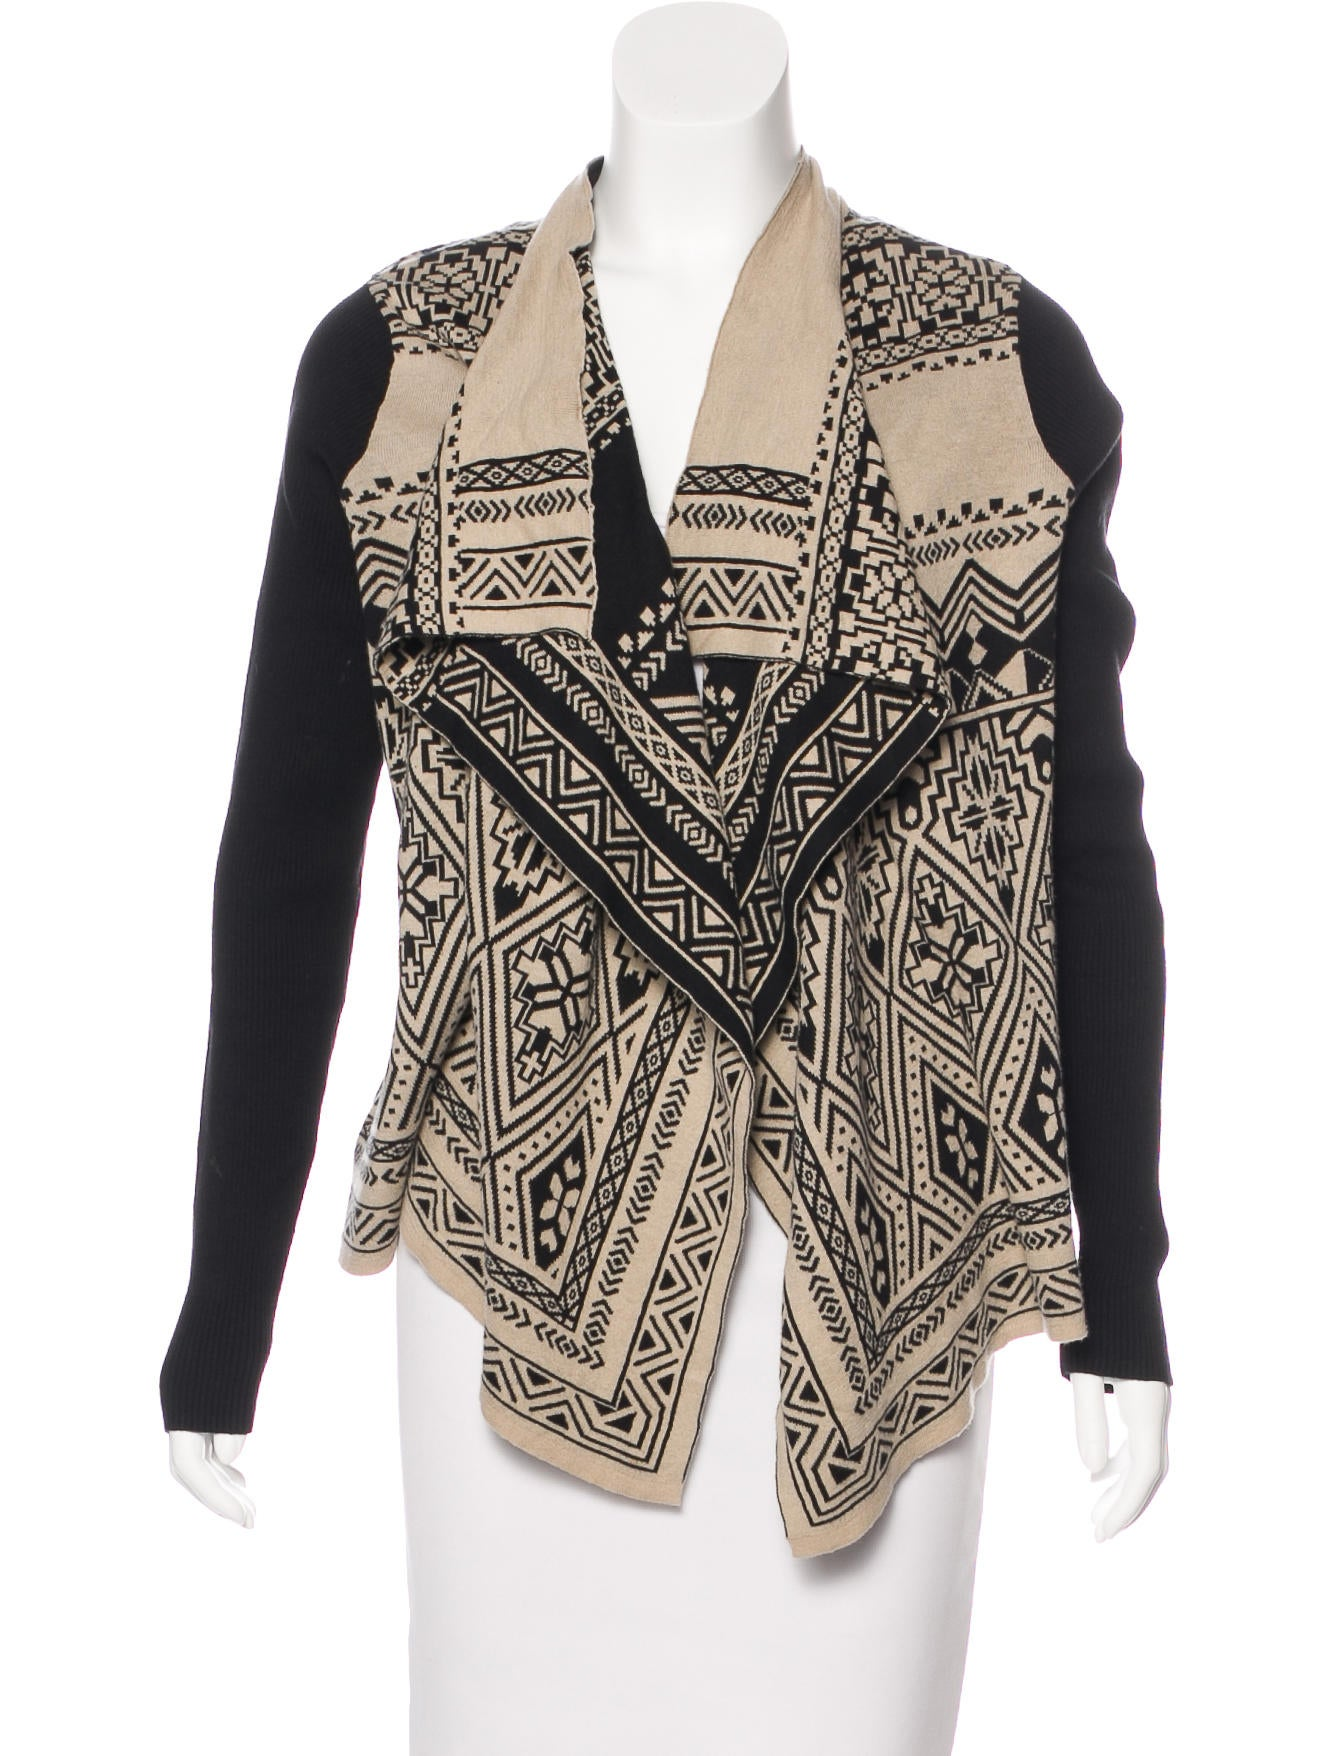 Givenchy Open Front Waterfall Cardigan - Clothing - GIV41333 | The ...